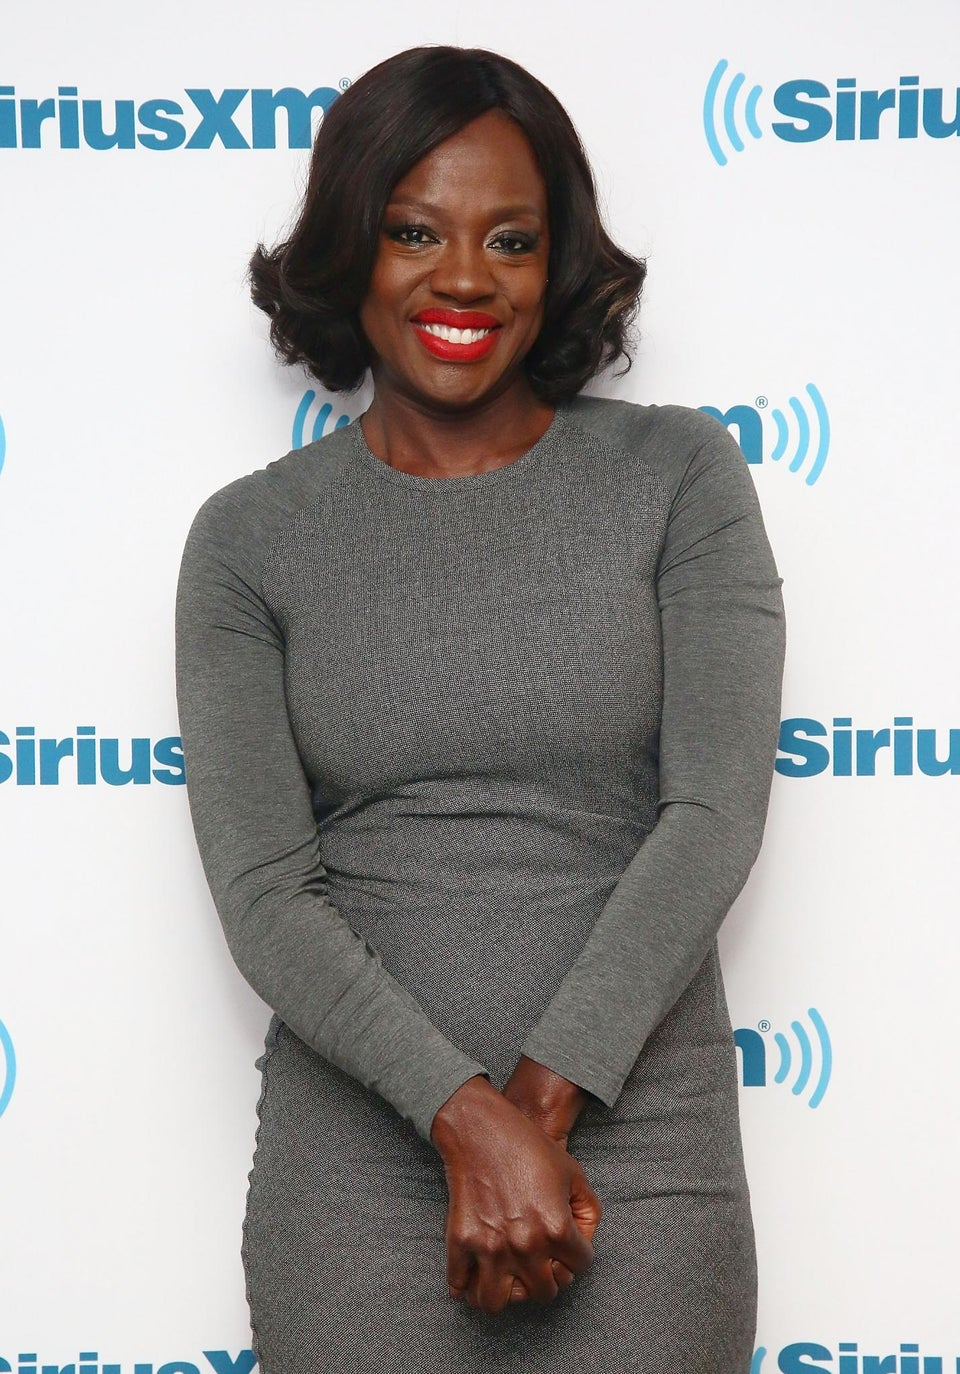 Viola Davis Reveals the Questions She'd Like to Be Asked on the Red Carpet